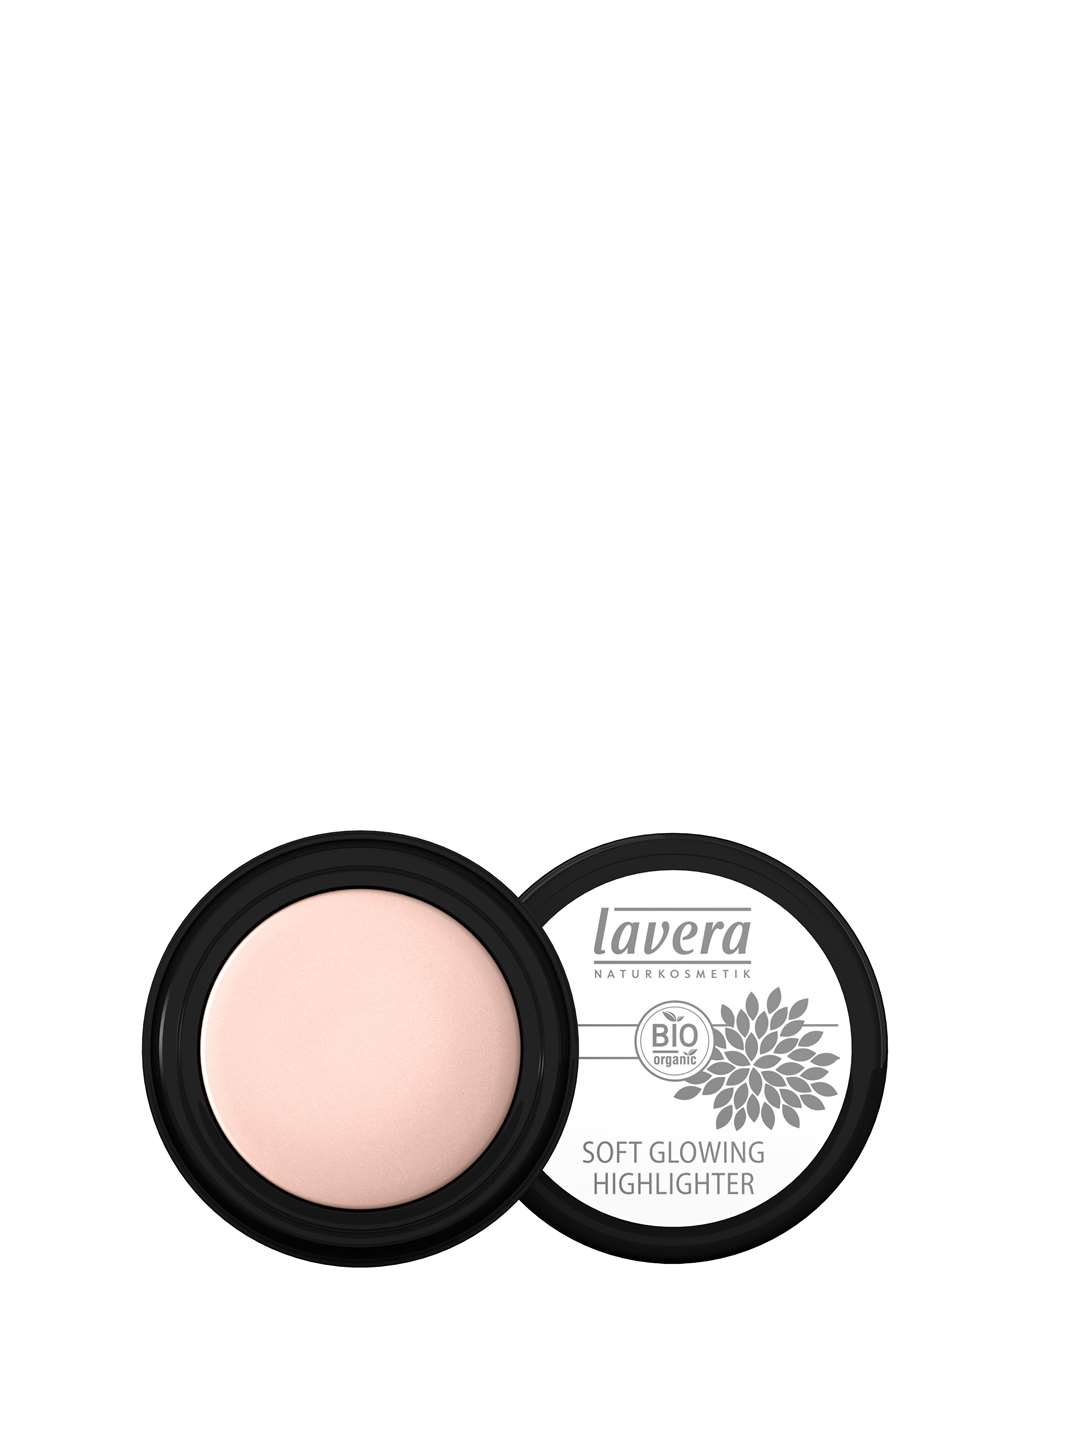 Lavera Soft Glowing Highlighter, £9.90 (26884129)